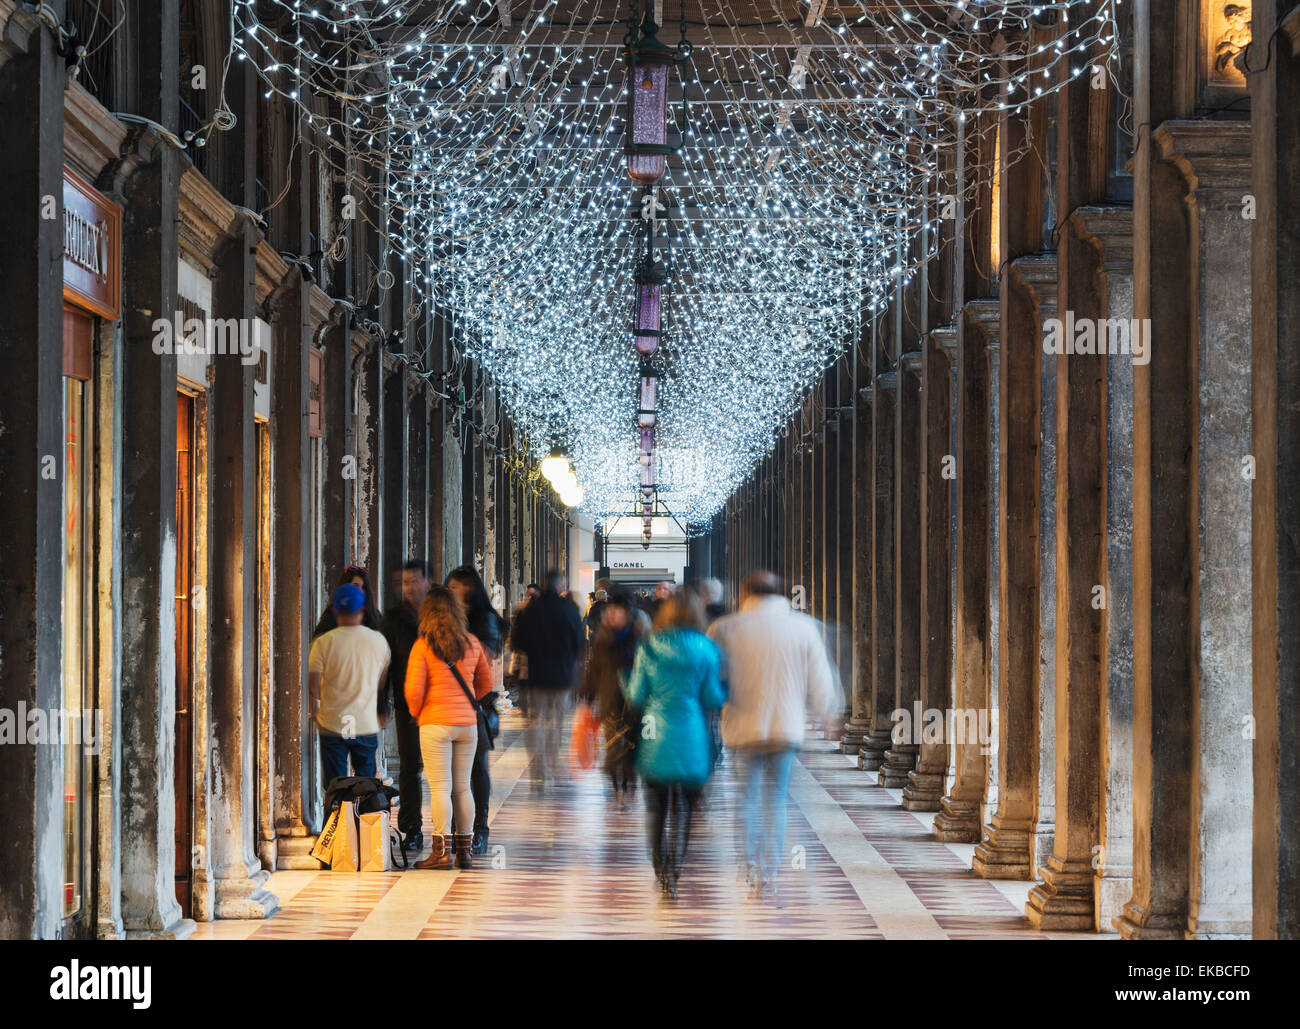 Christmas decorations, St. Marks Square, San Marco, Venice, UNESCO World Heritage Site, Veneto, Italy, Europe - Stock Image